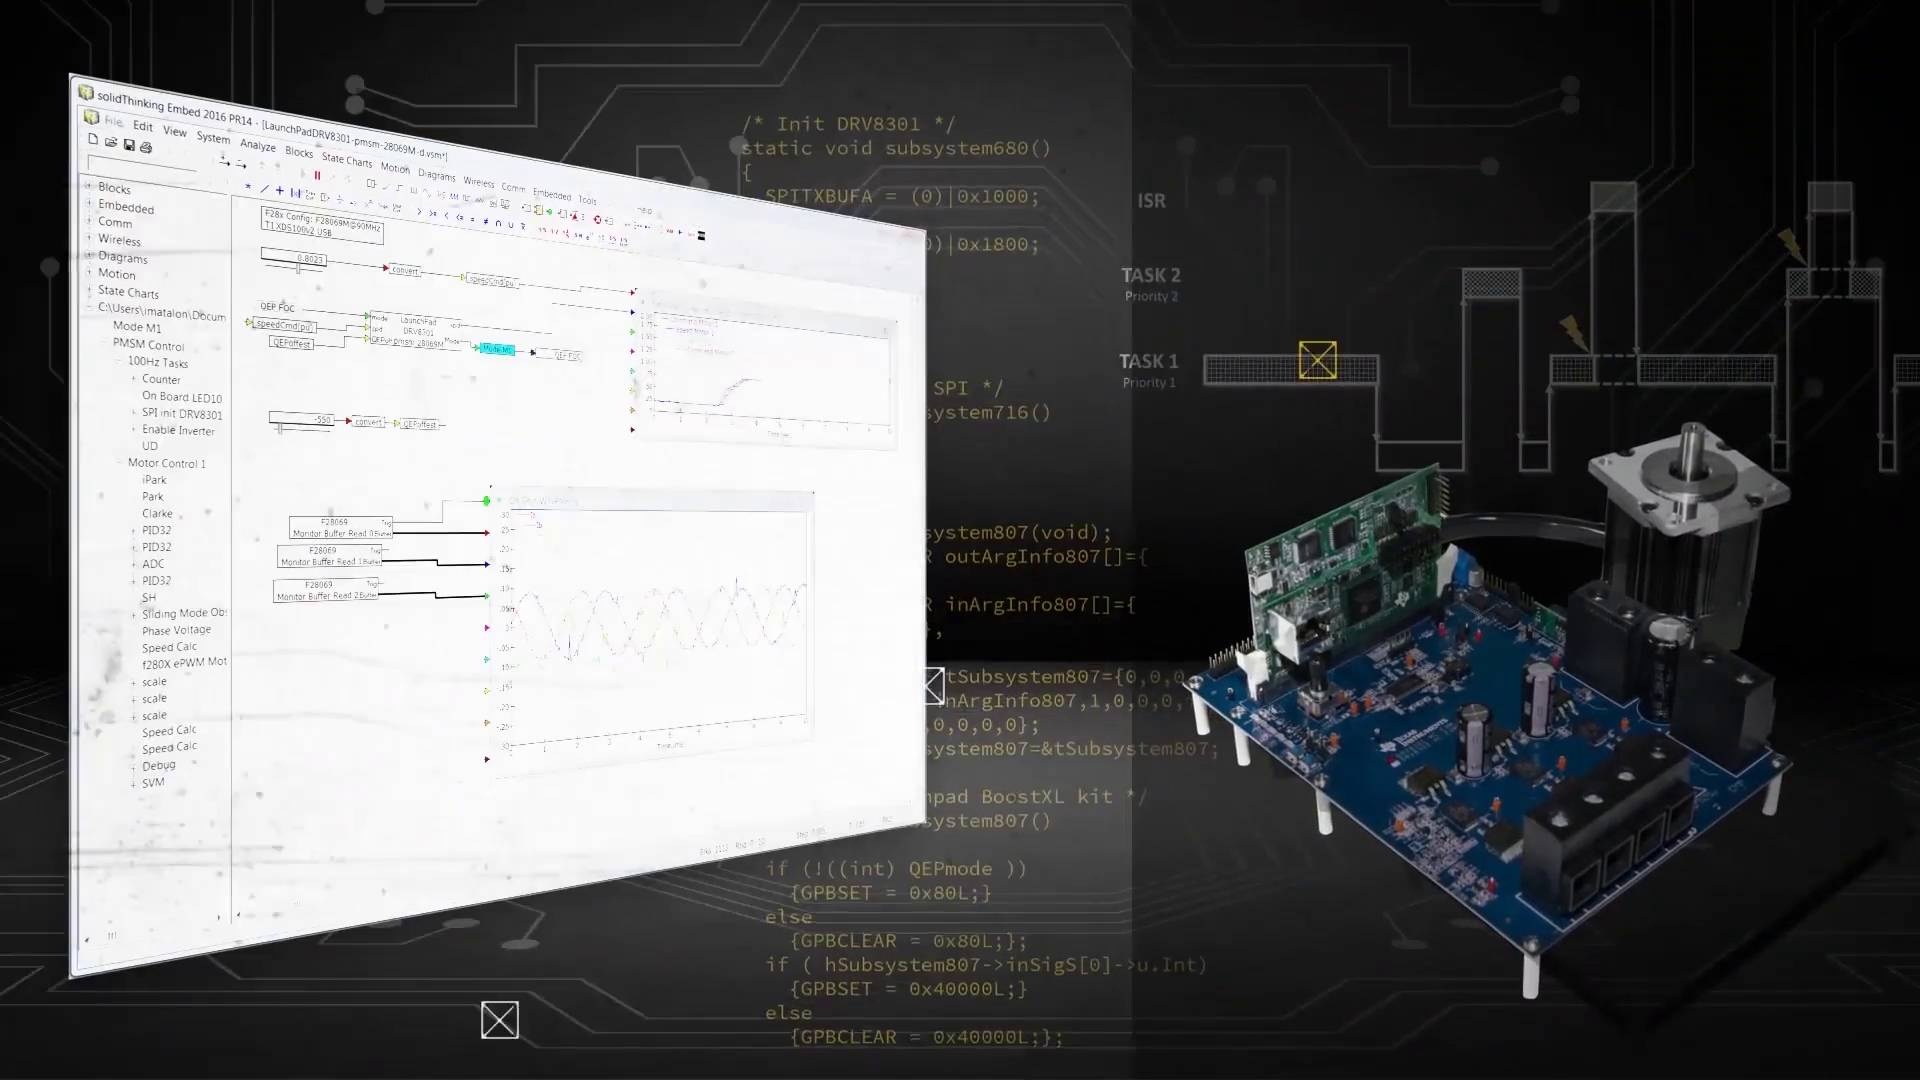 Altair embed visual environment software for embedded systems